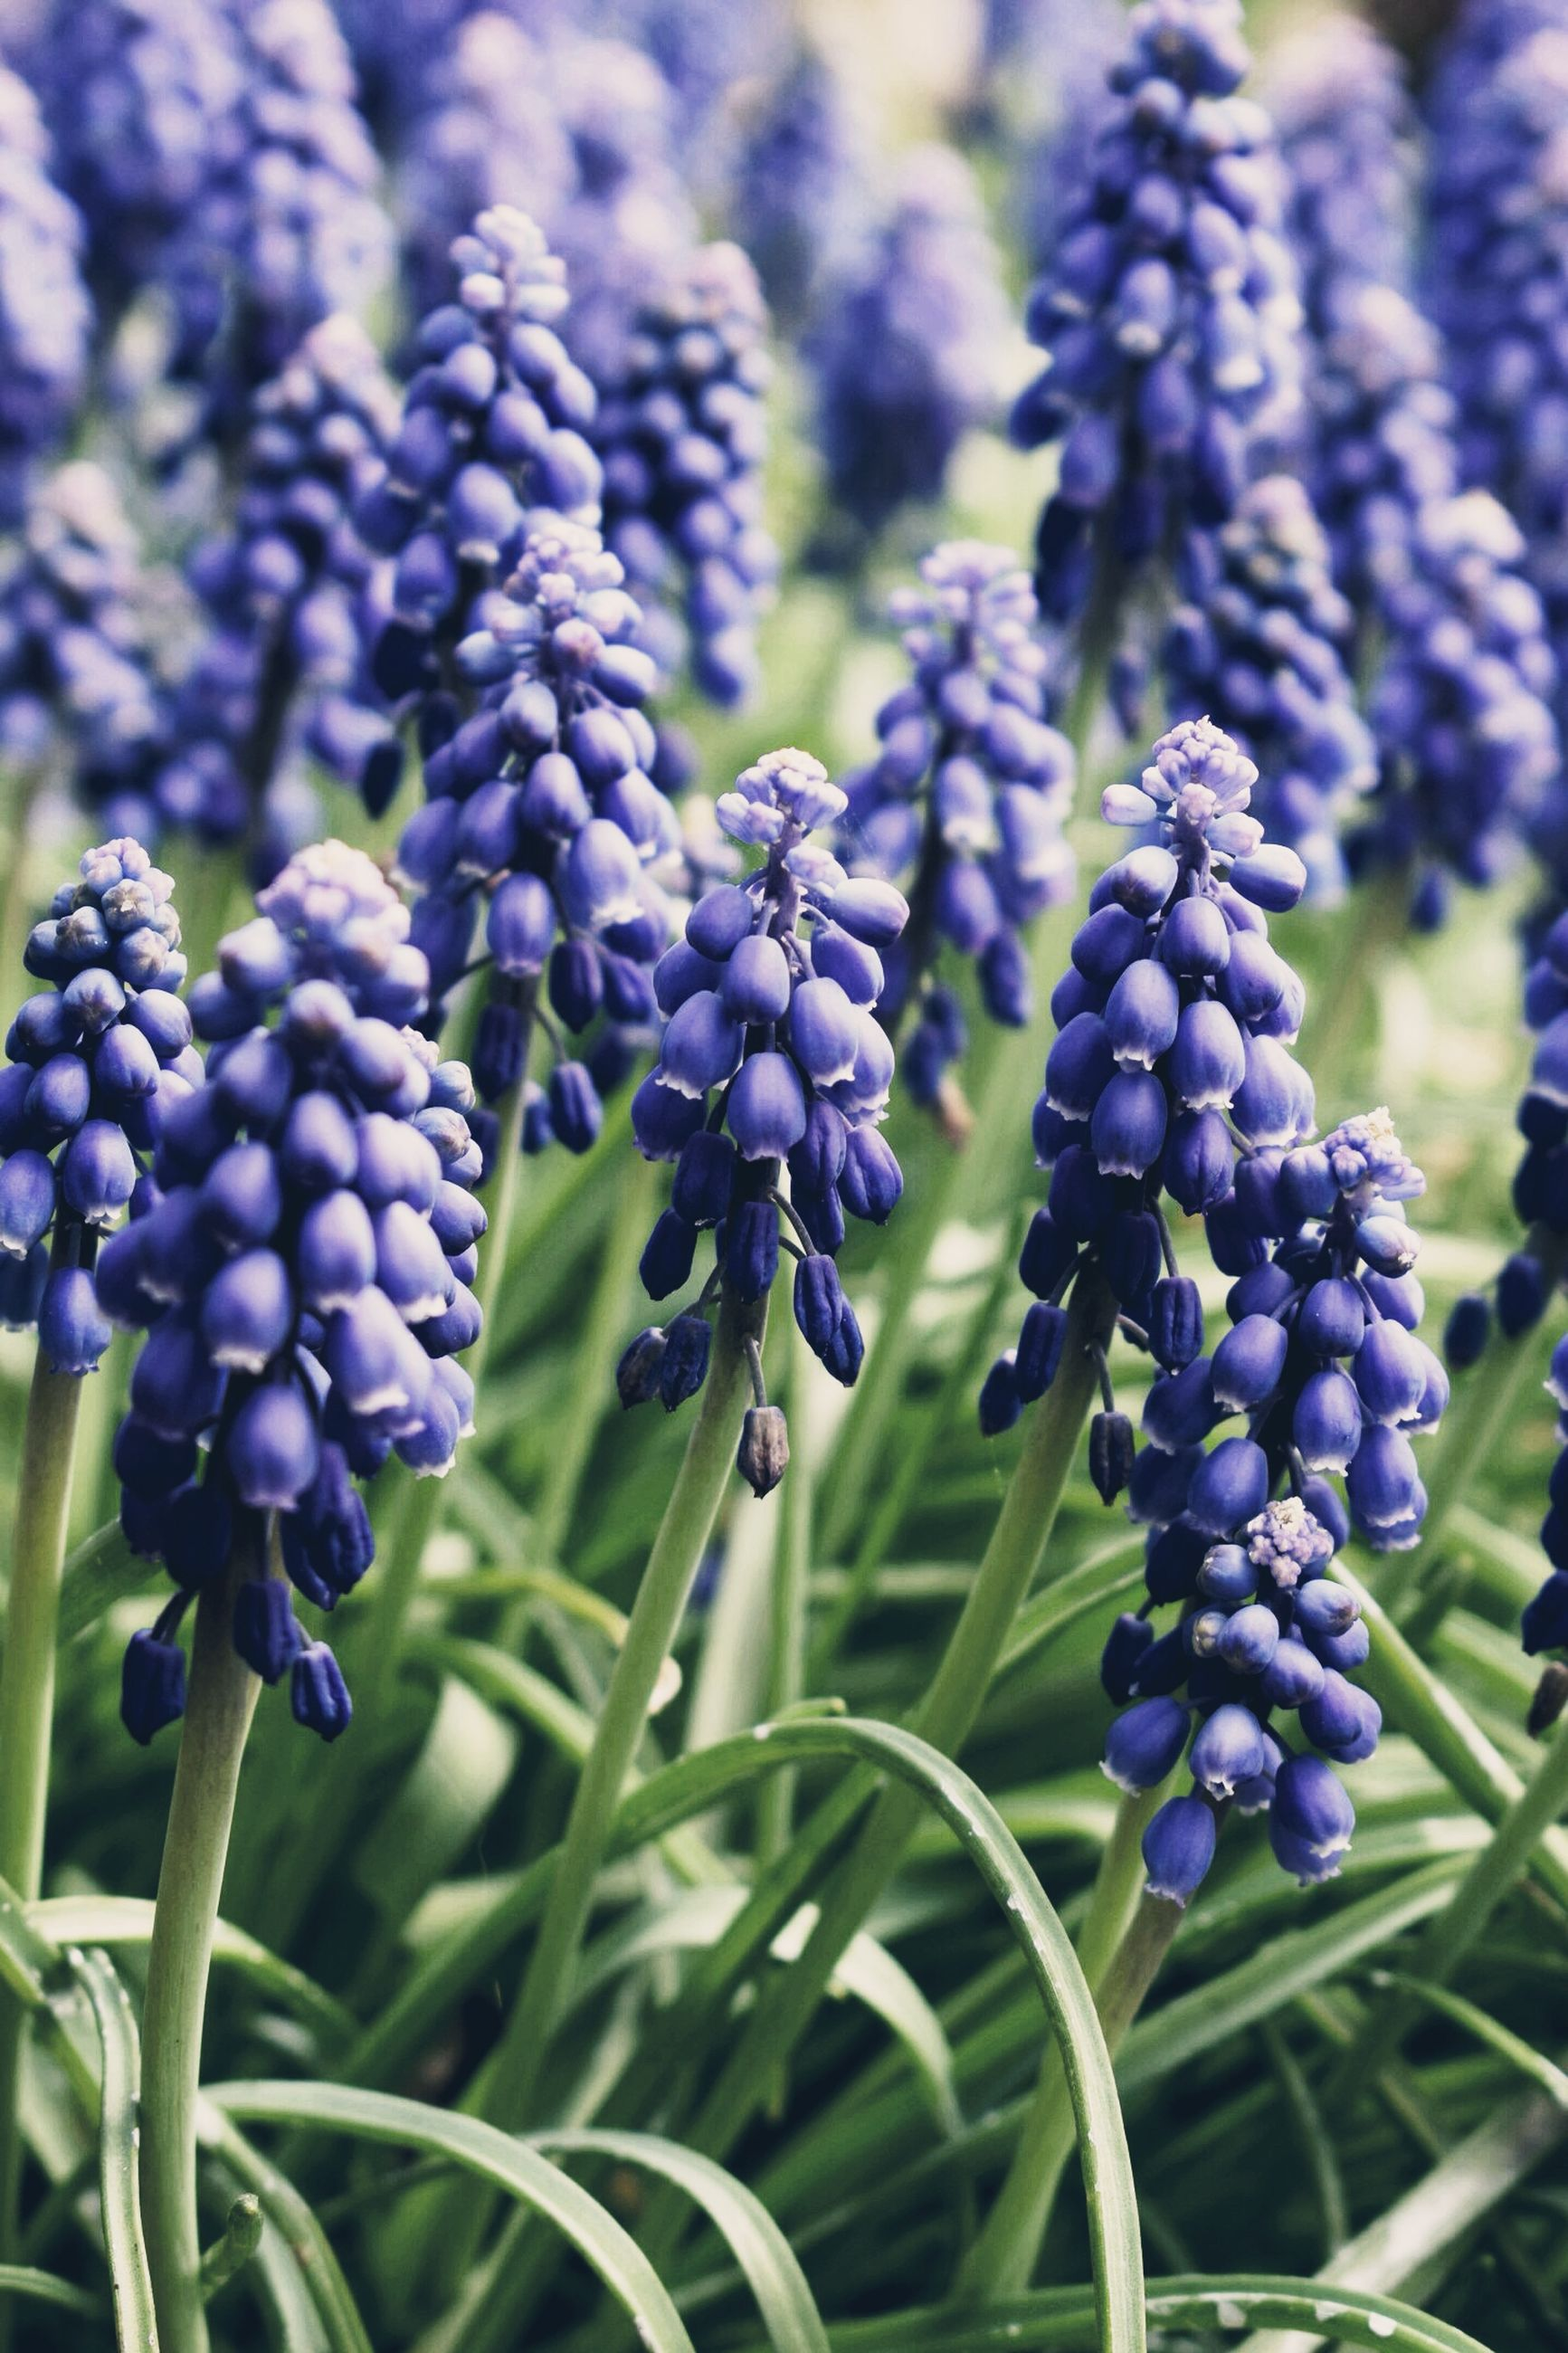 flower, plant, flowering plant, purple, freshness, growth, vulnerability, fragility, beauty in nature, close-up, hyacinth, nature, plant stem, no people, day, petal, lavender, focus on foreground, field, flower head, springtime, bunch of flowers